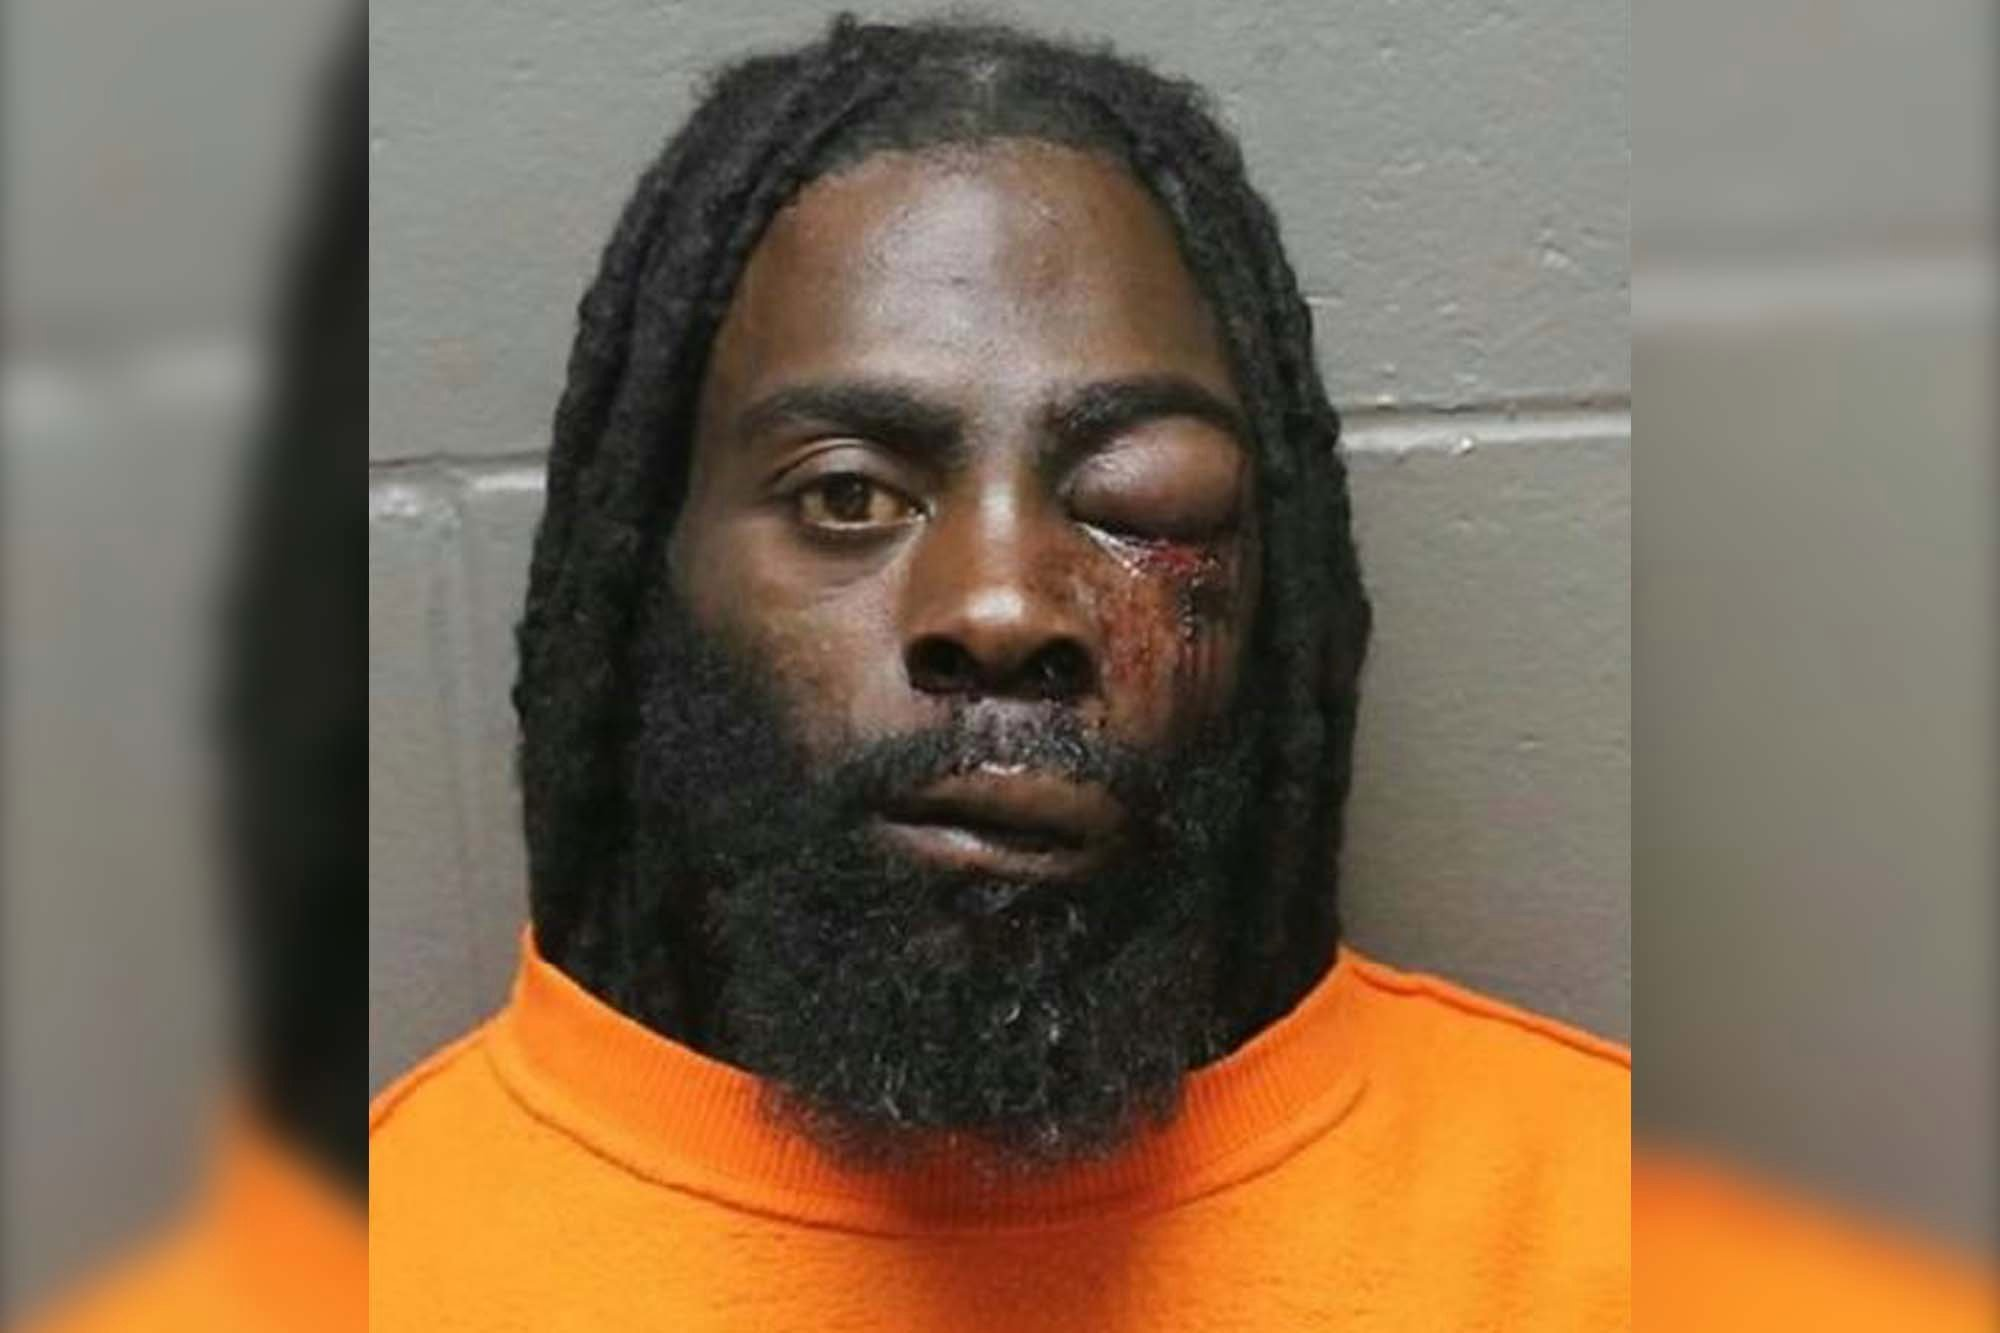 Naked man accused of assaulting baby in stroller in NJ